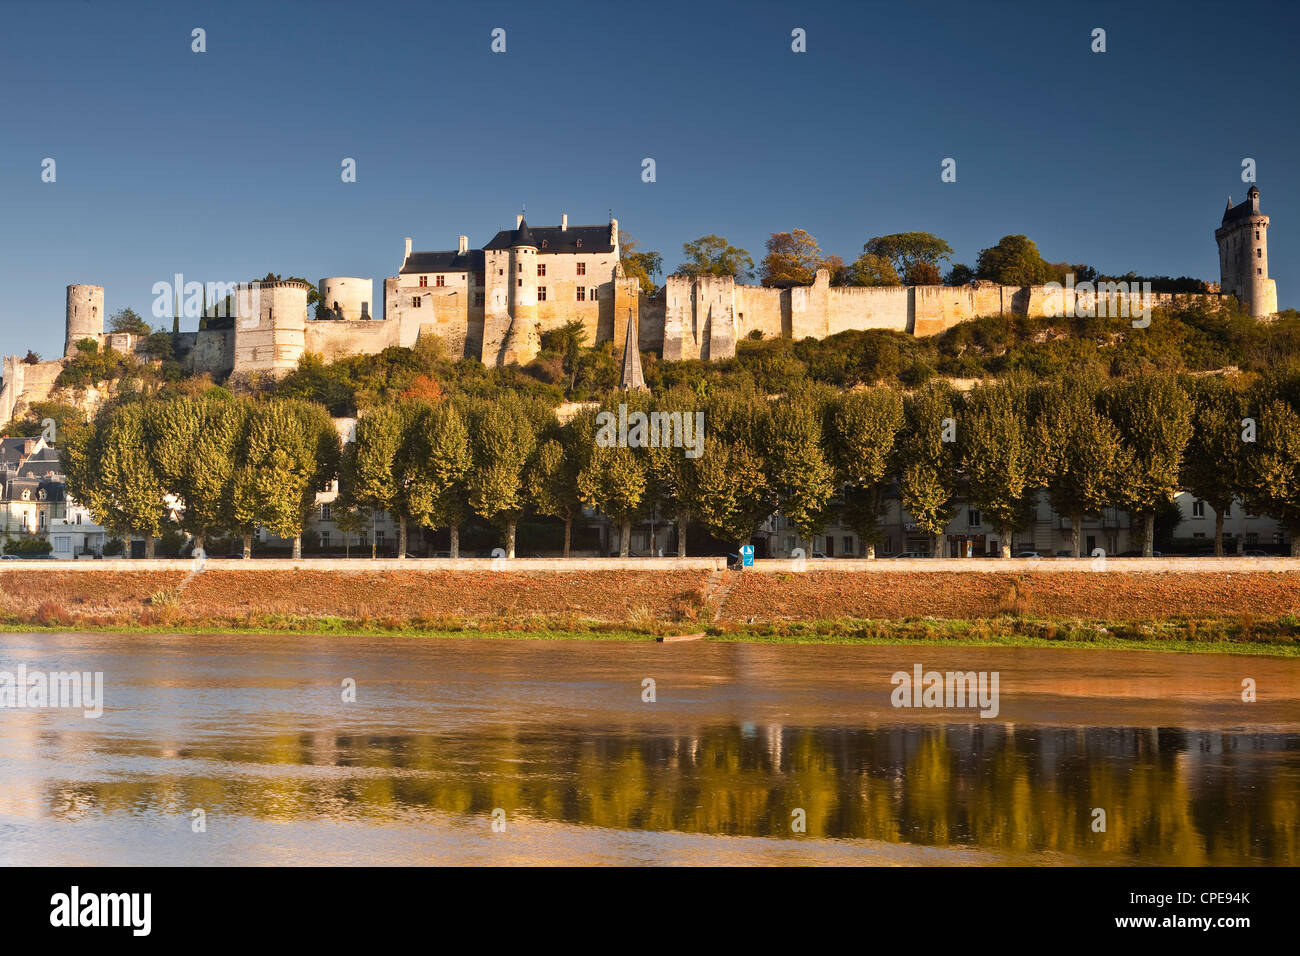 The chateau of Chinon, UNESCO World Heritage Site, Indre-et-Loire, Loire Valley, France, Europe - Stock Image